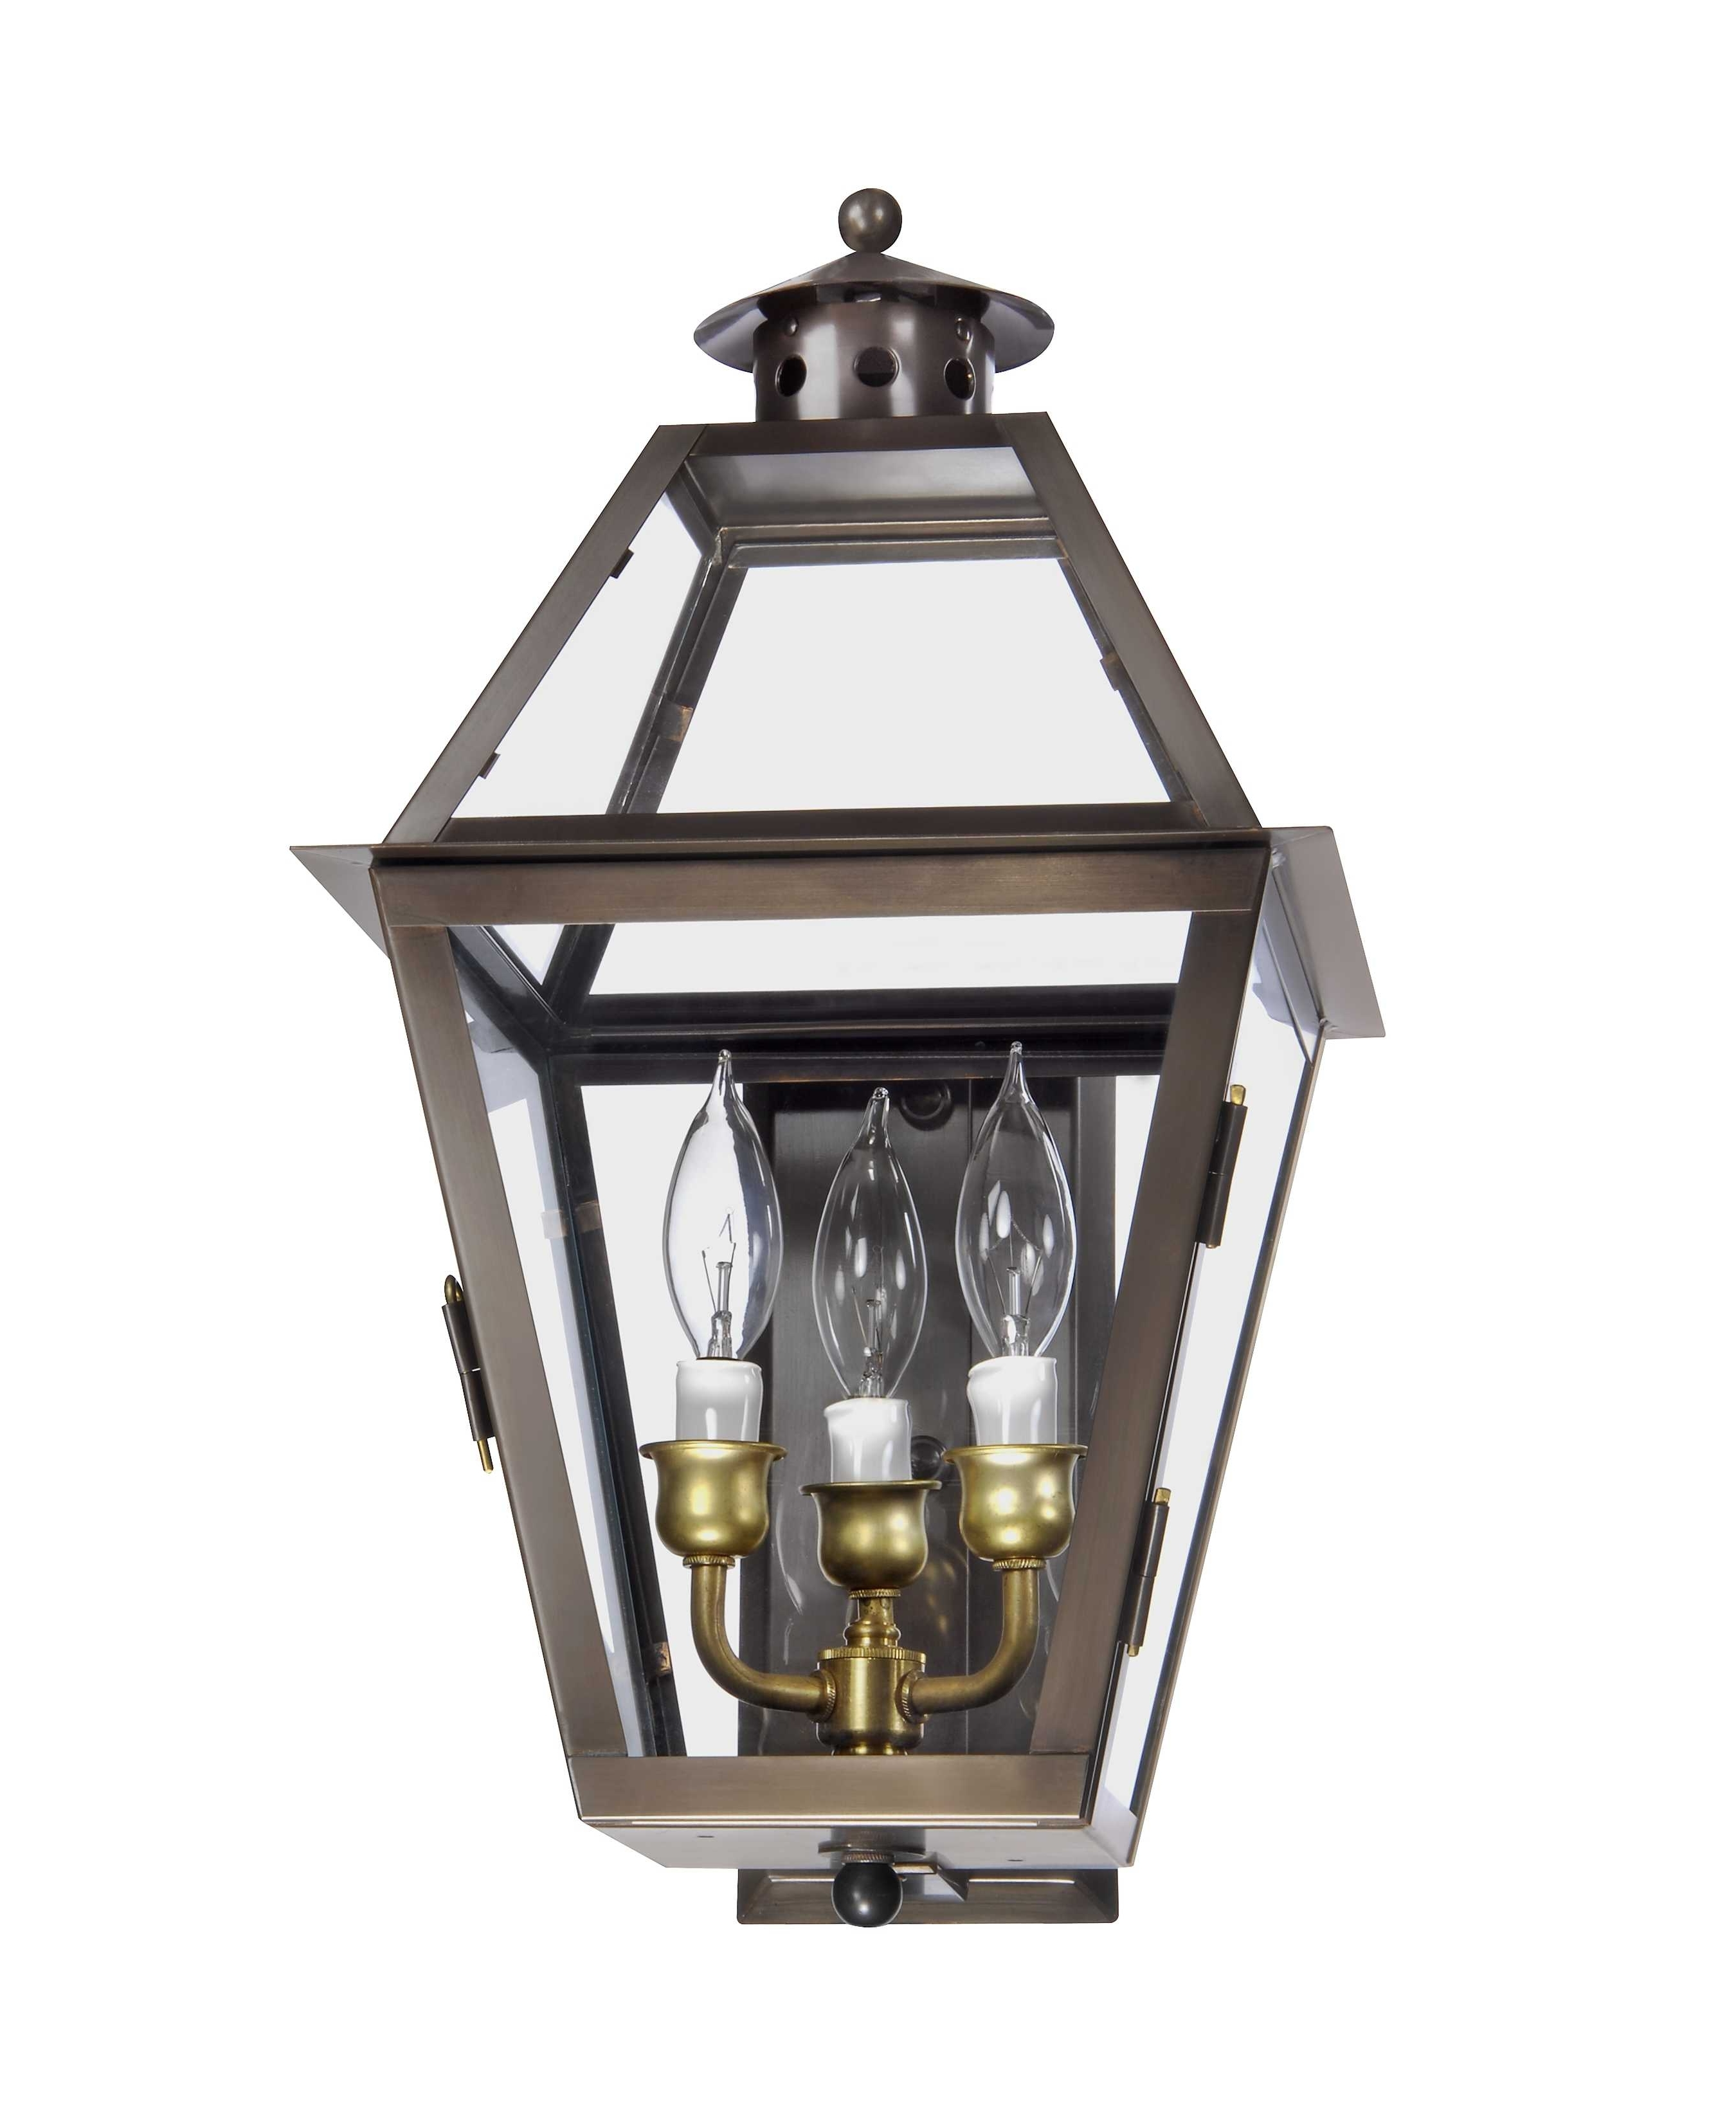 Ch 27 Wall Mount Gas Lantern – Lantern & Scroll With Regard To Outdoor Electric Lanterns (View 2 of 20)